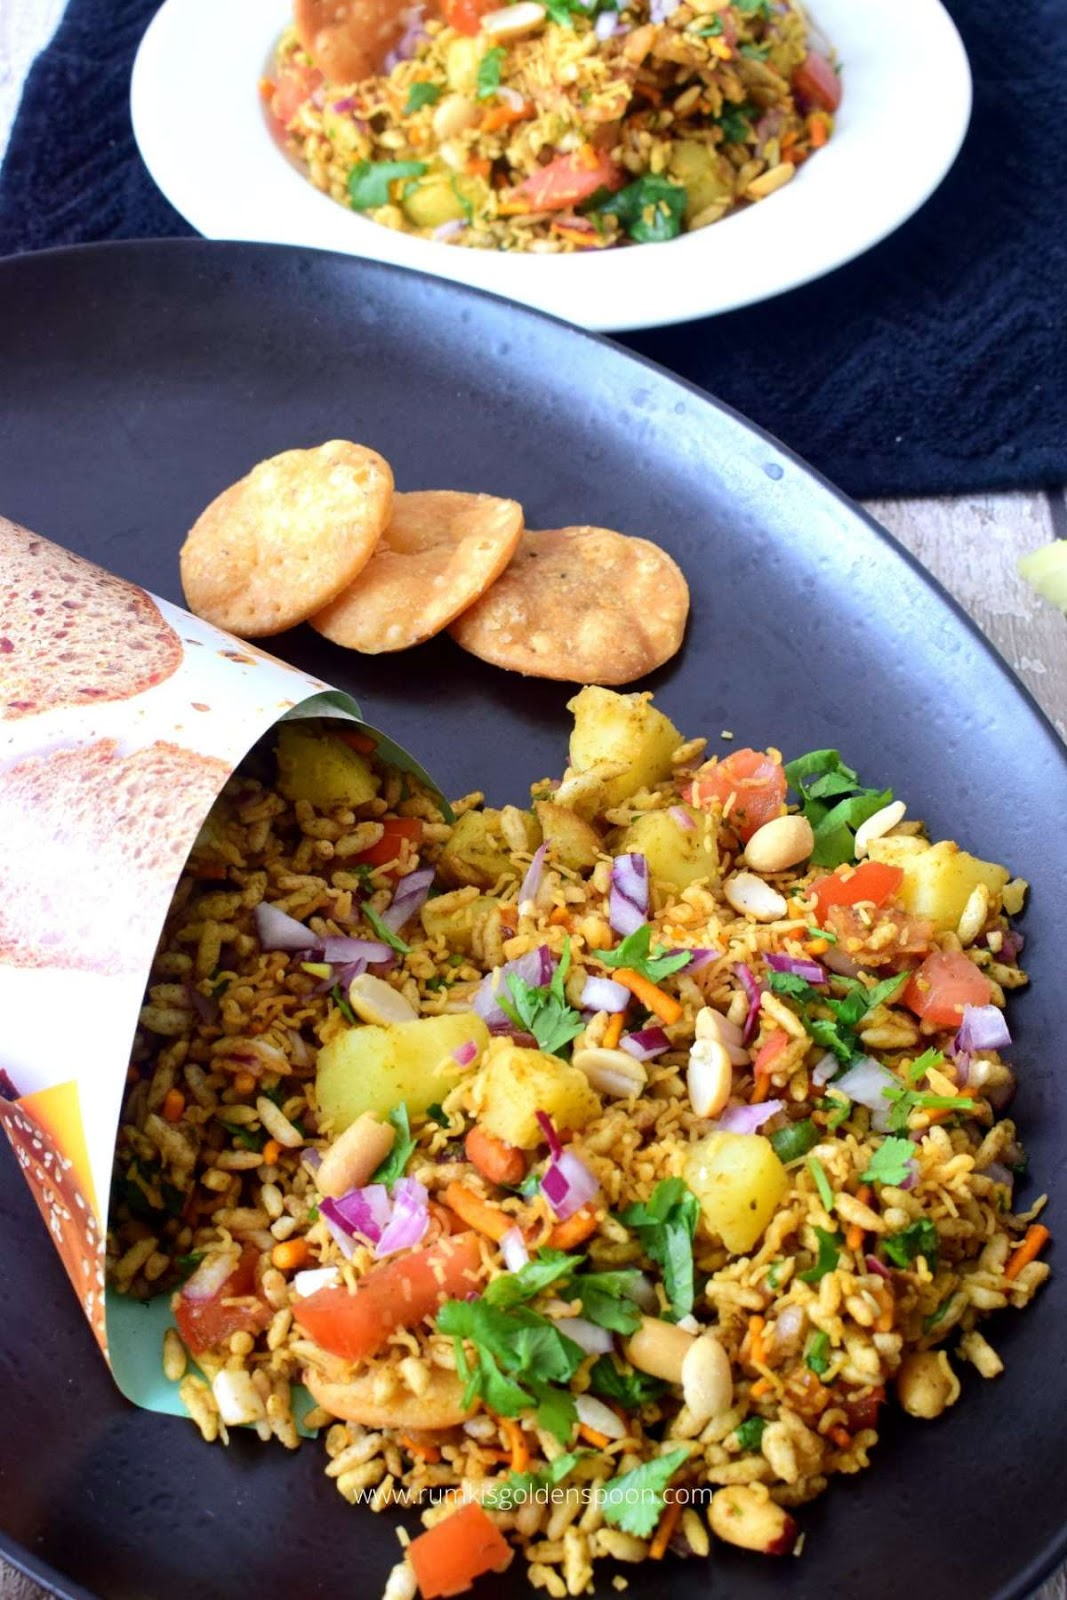 bhel puri, bhelpuri, bhel poori, Mumbai bhel puri, bhelpuri recipe, recipe for bhelpuri, recipe of bhelpuri, bhel recipe, bhel puri chaat, puffed rice snack, puffed rice snacks, snacks with puffed rice, bhel puri recipe, recipe for bhel puri, recipe of bhel puri, bhel puri how to make, Indian chaat recipe, Indian chaat recipes, chaat recipe, recipe for chaat, recipes of chaat, chaat papdi recipe, chaat recipe Indian, indian street food, list of indian street food, recipes for Indian street food, recipes of Indian street food, best Indian street food recipes, Indian street food recipes, Indian snack recipe, Indian snack recipes, Indian snacks recipes for evening, Indian snacks easy recipes, Rumki's Golden Spoon